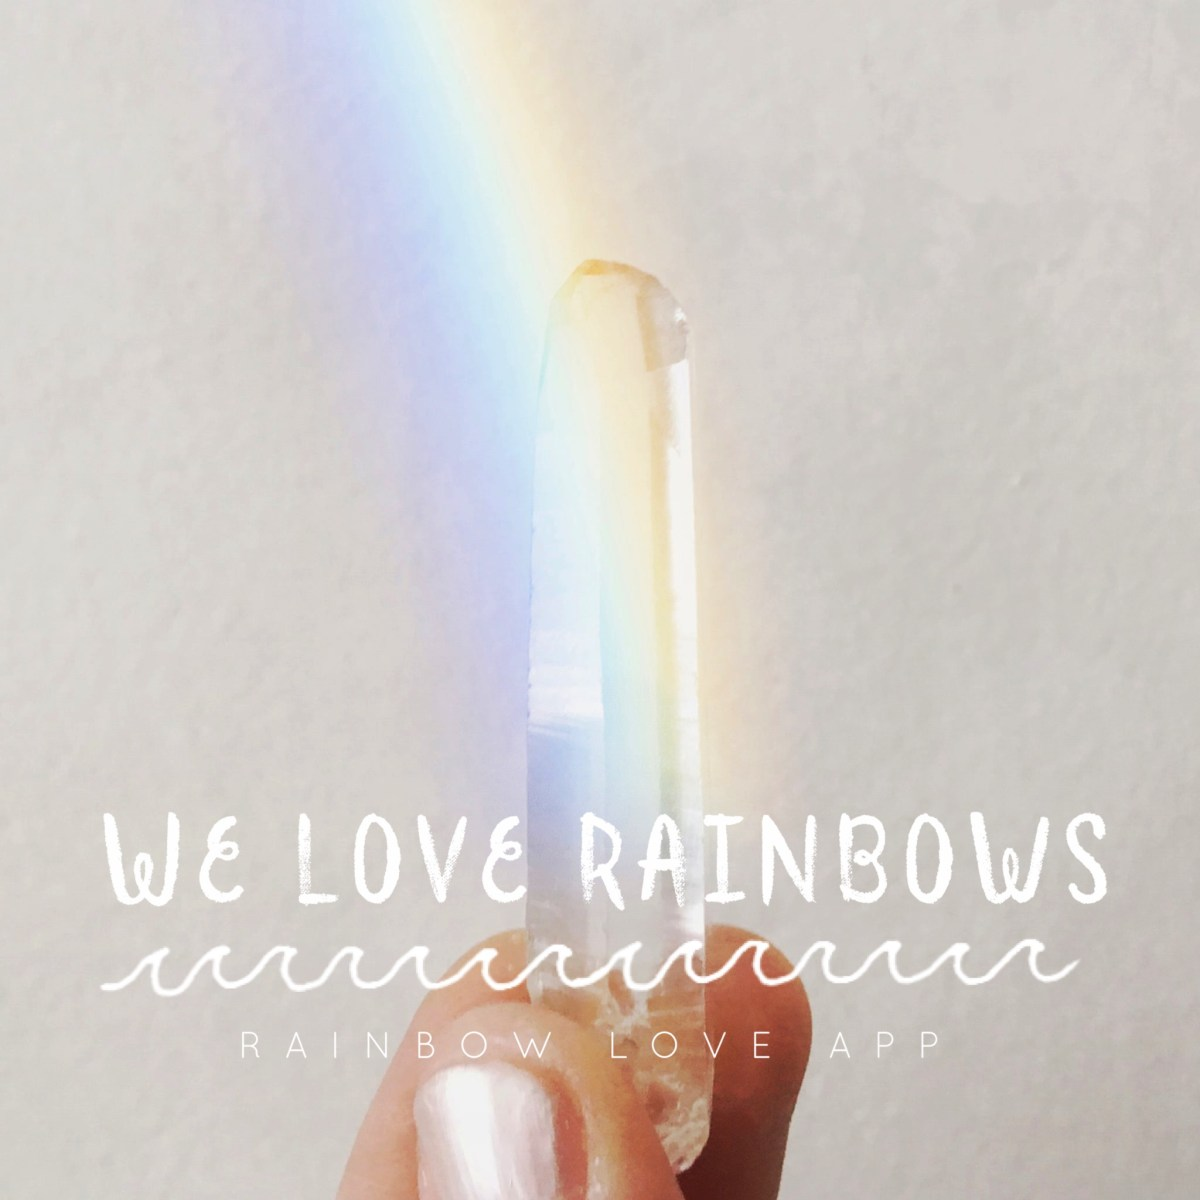 Rainbow-Love- App-Filter-Art-Text-Editor